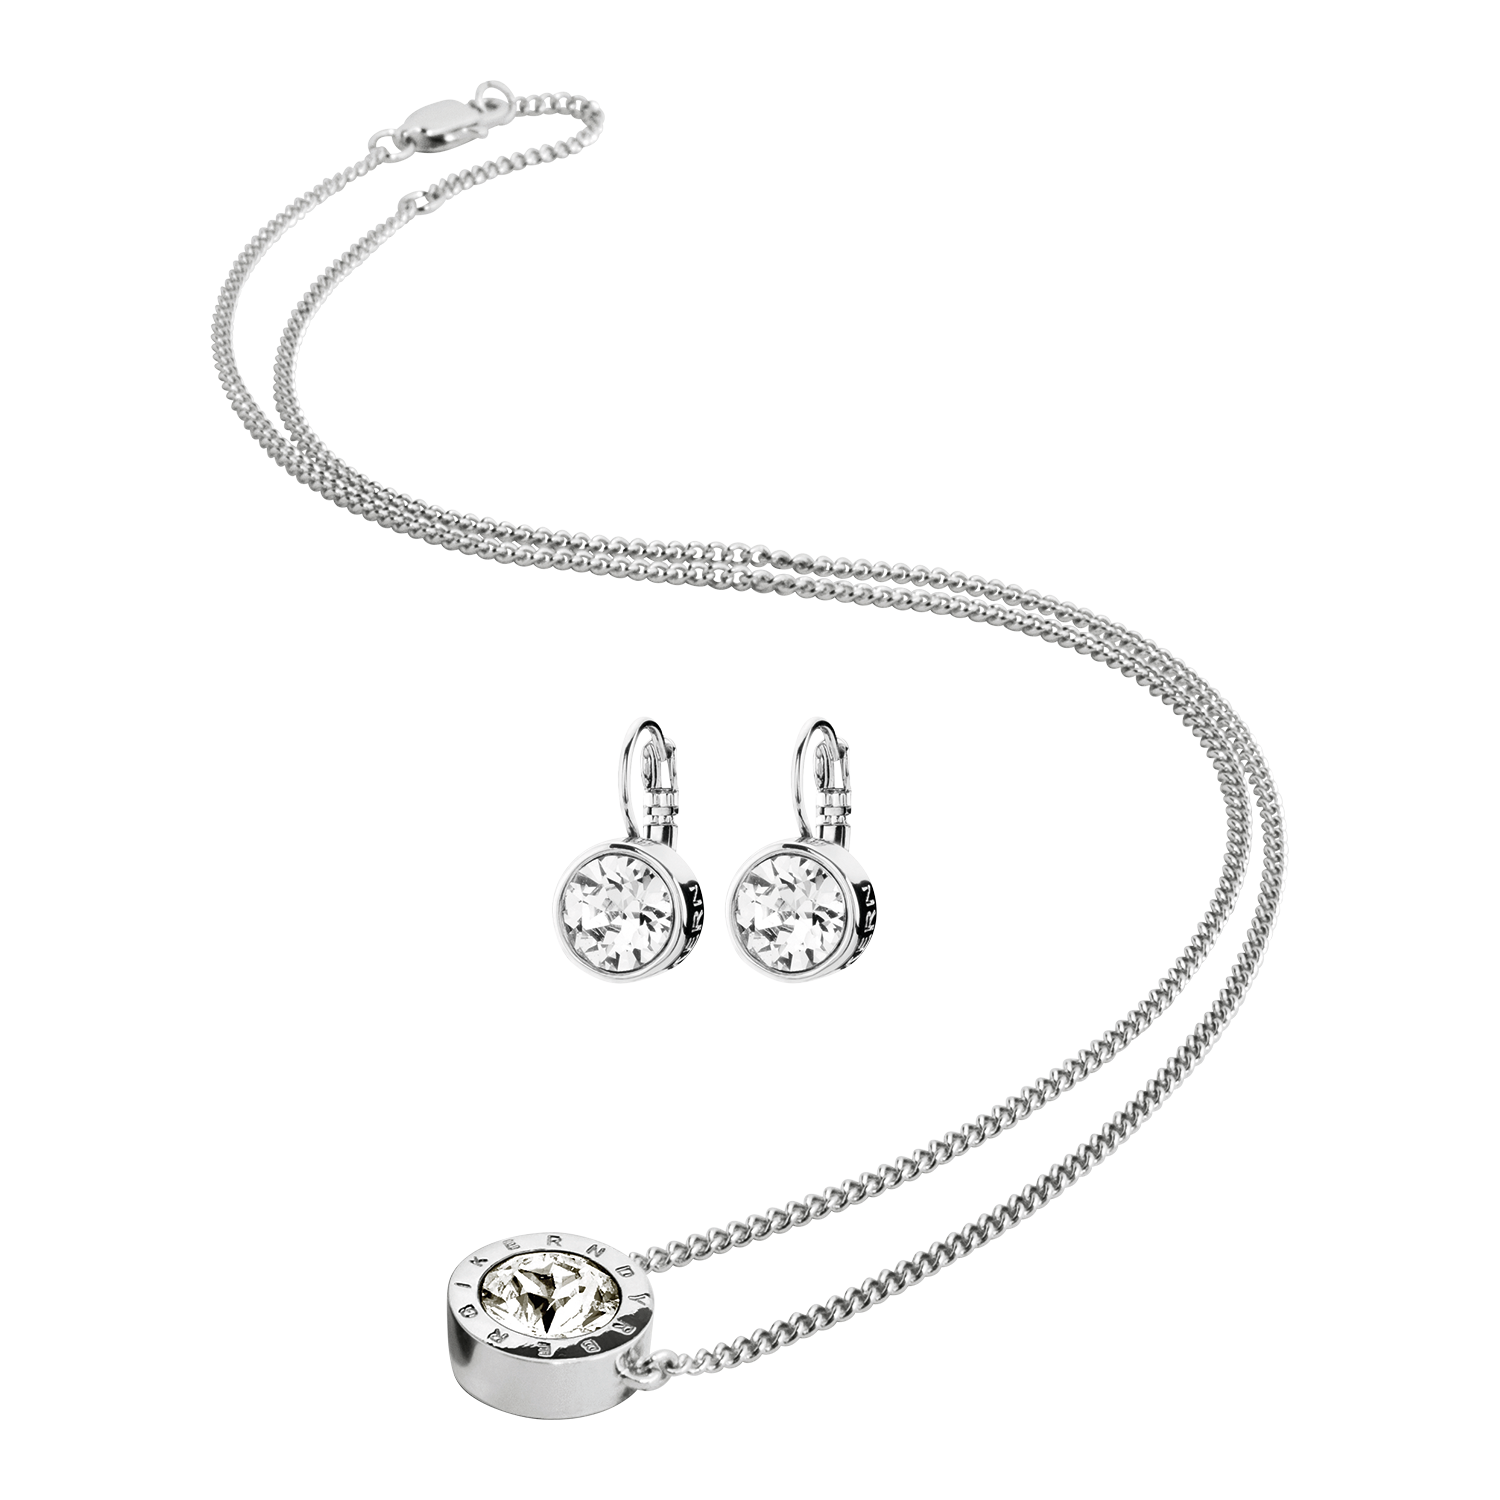 139a6e2e Dyrberg/Kern Louise Jewellery Set, Stainless Steel/Crystal ...